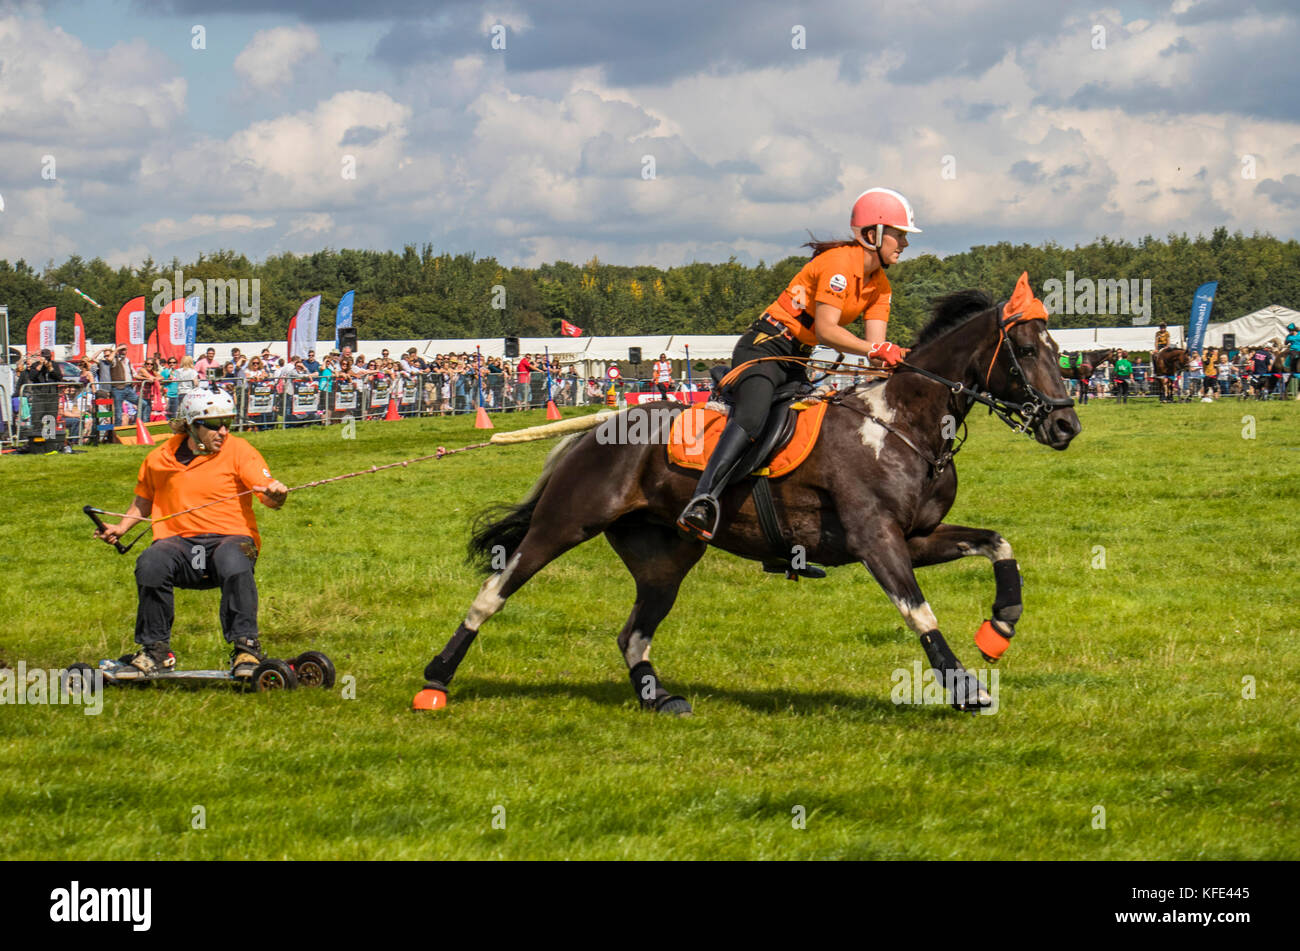 Horseboarding at Cheshire and Country fair Tabley Showground Cheshire UK - Stock Image